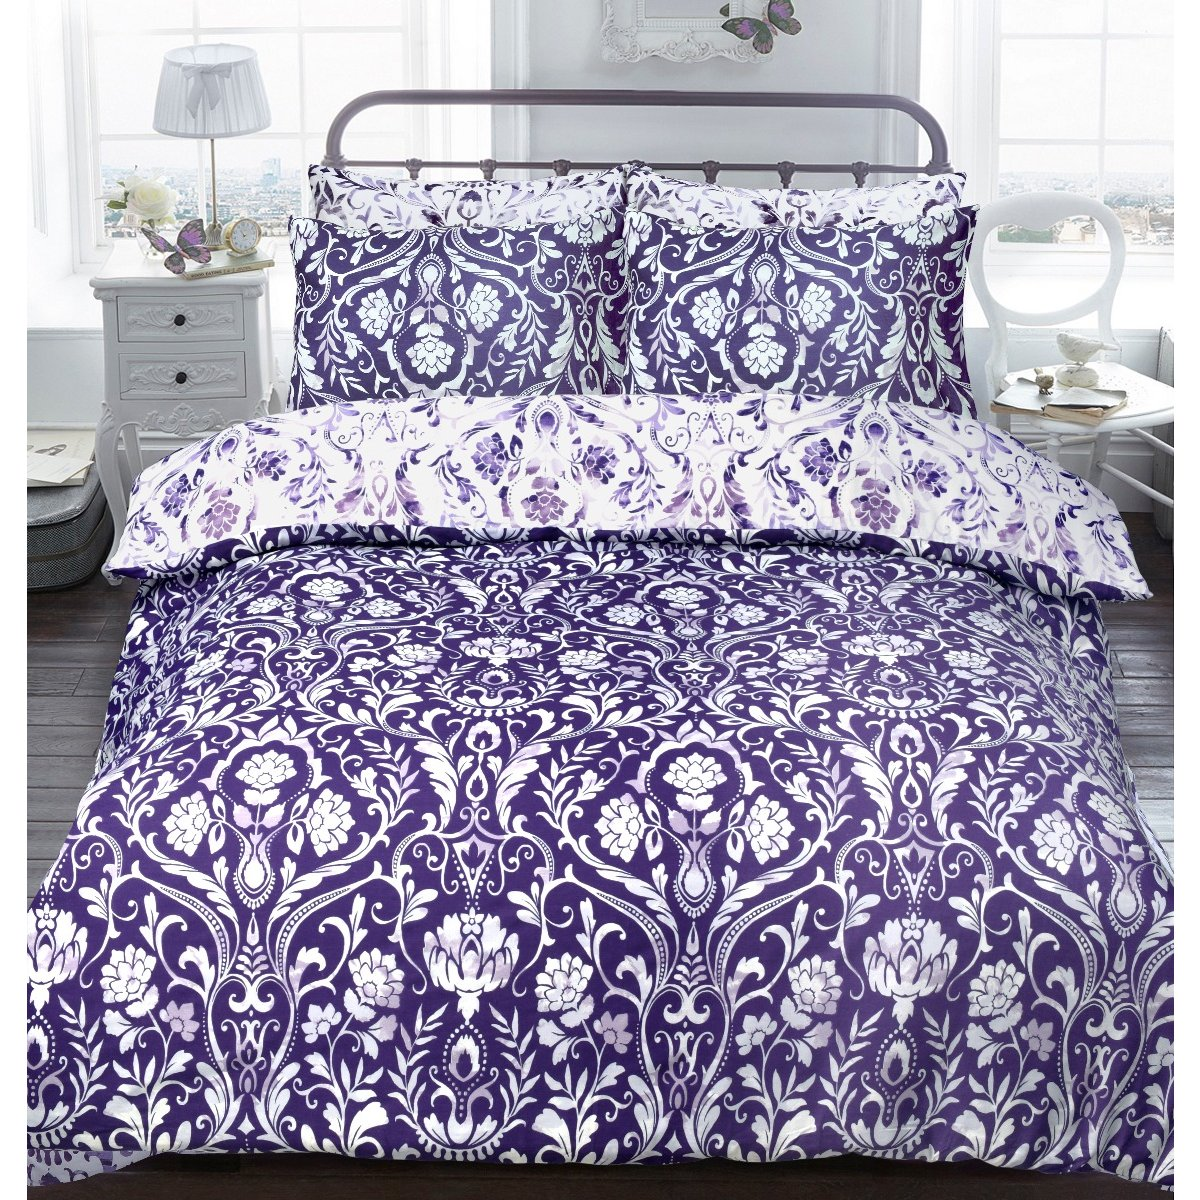 Painted Damask Purple Bedding - Reversible Duvet Cover and Pillowcase Set